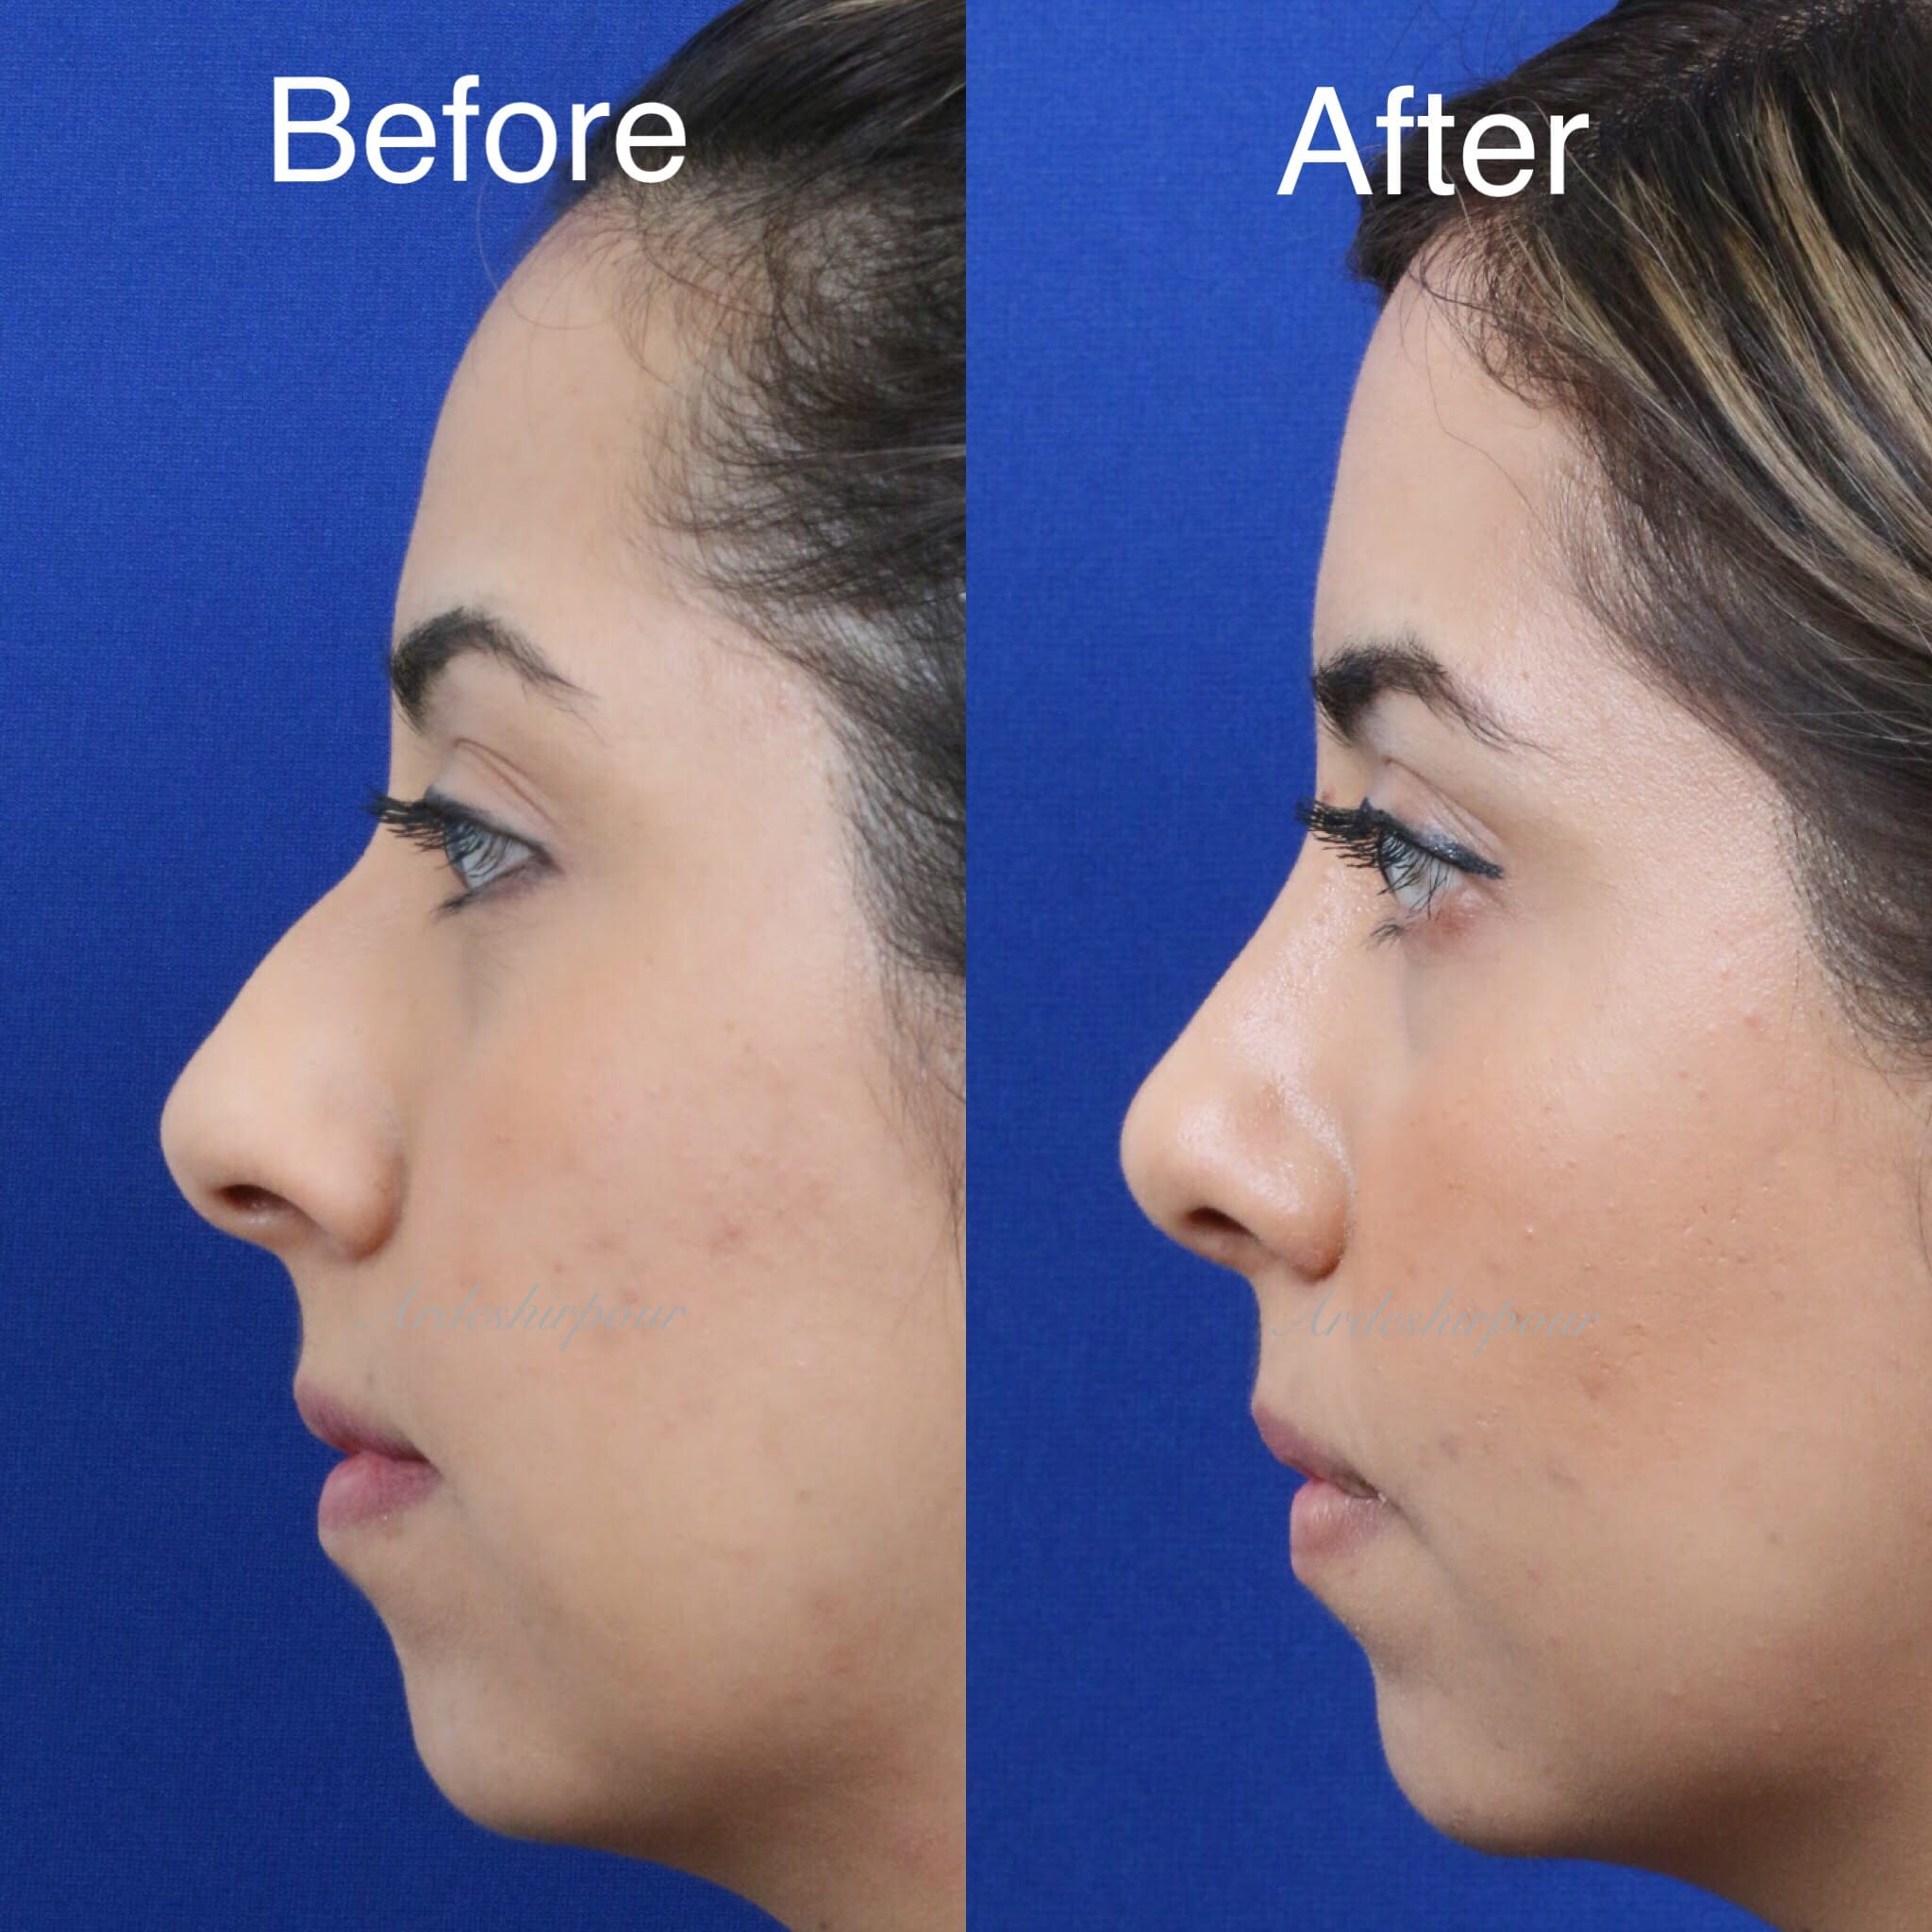 What is the best age to get a nose job?